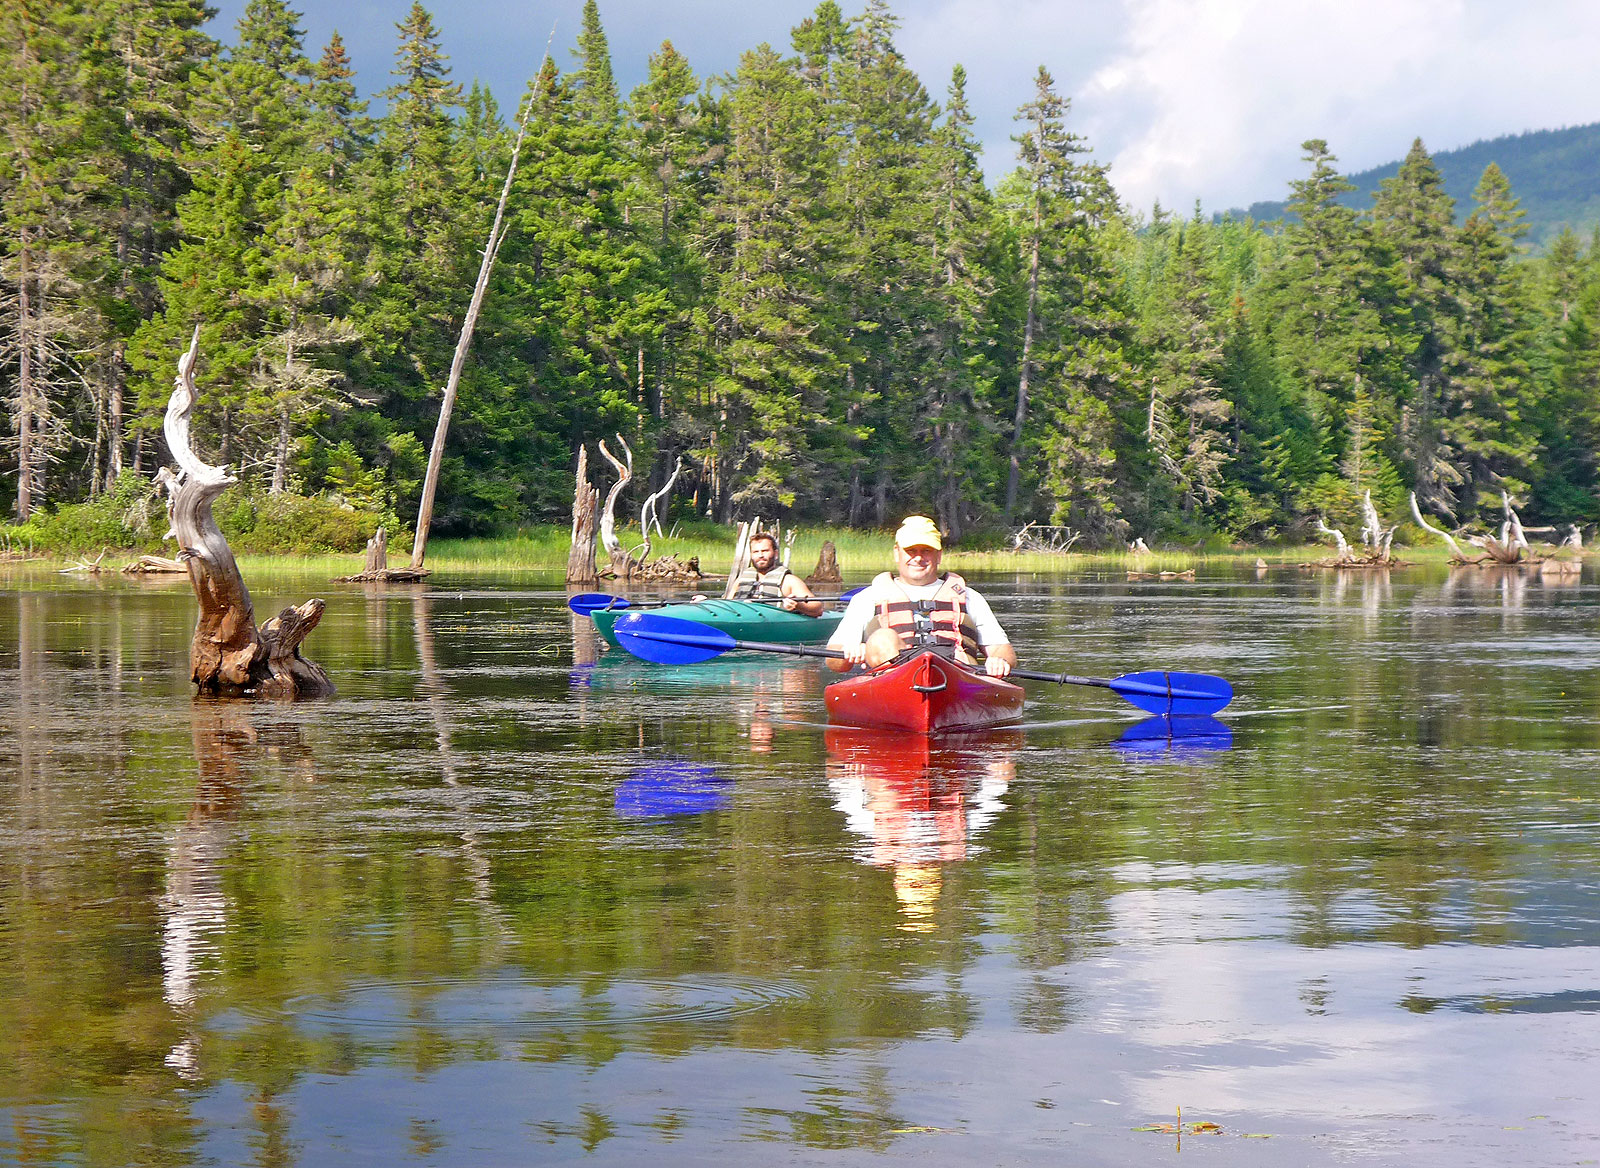 Kayaking in the Rangeley Lakes Region